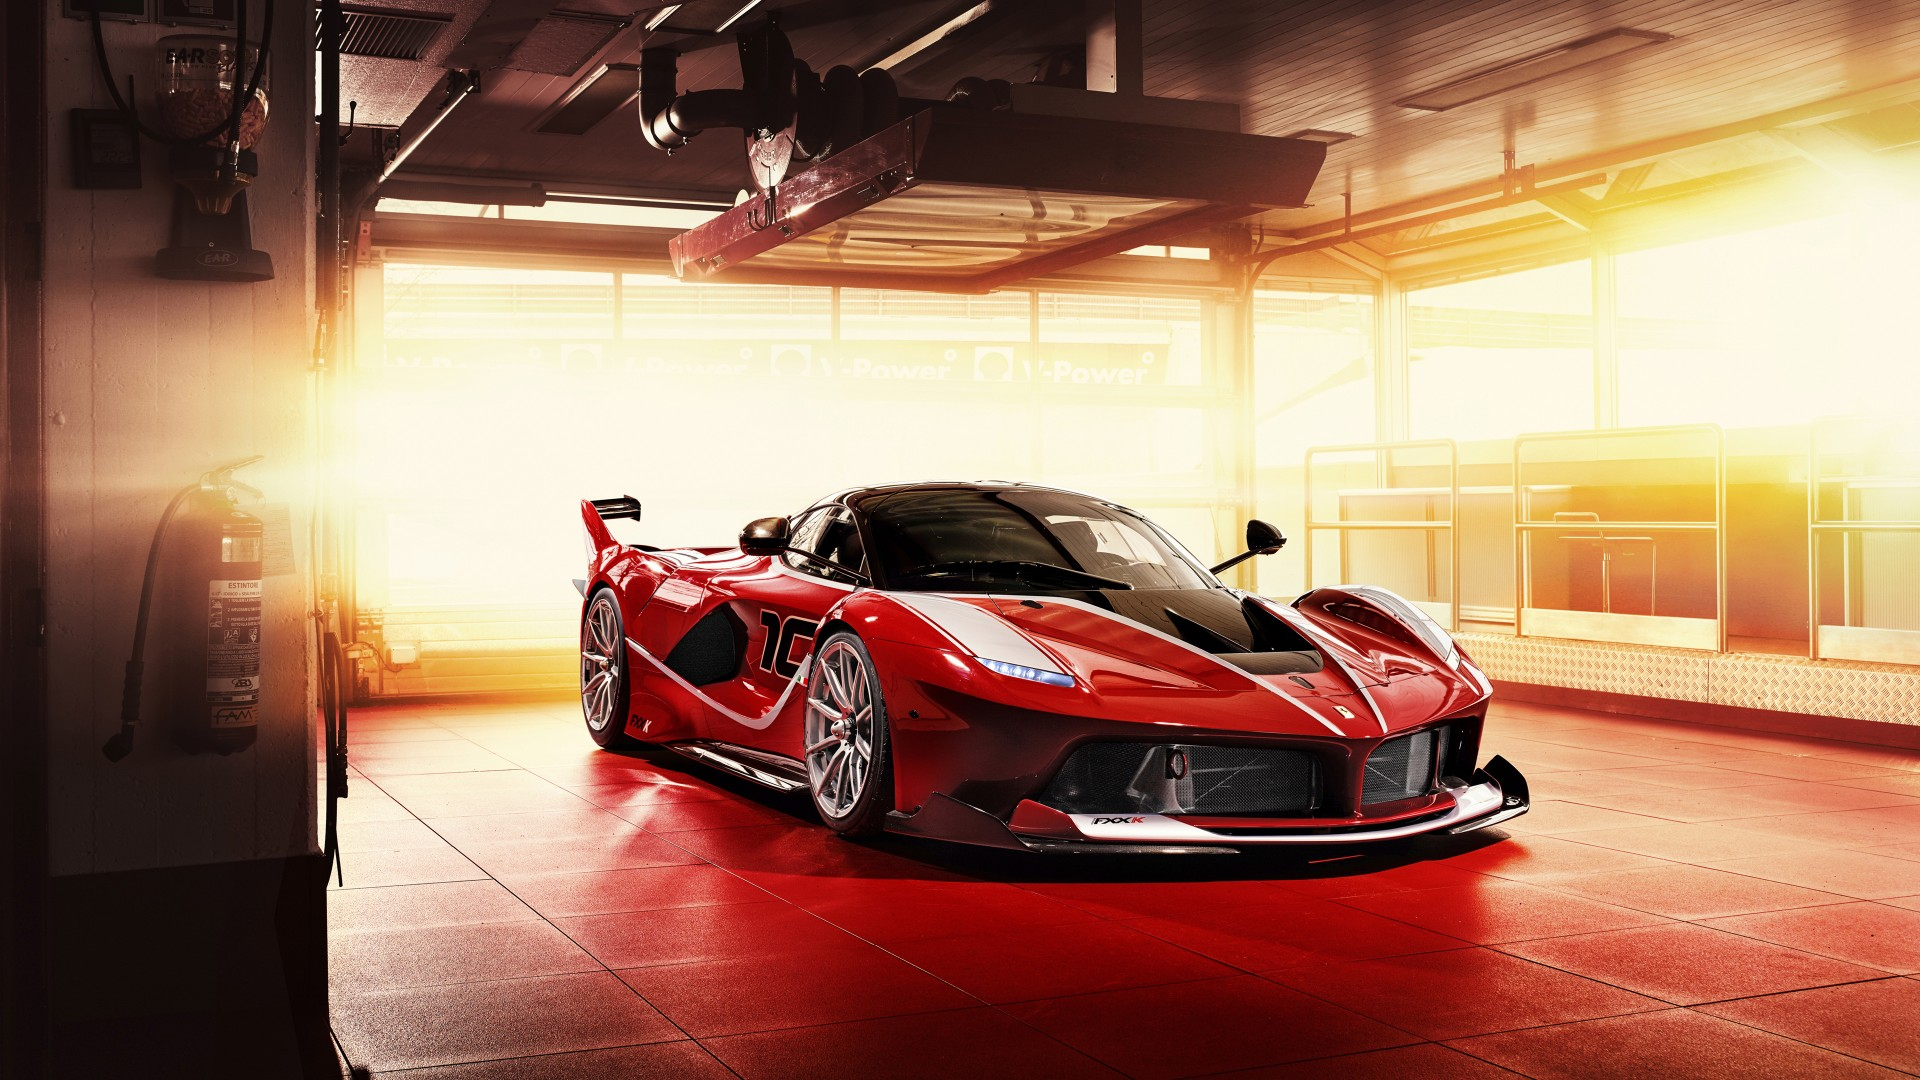 Maserati Car Hd Wallpaper Download Ferrari Fxx K Wallpaper Hd Car Wallpapers Id 5609